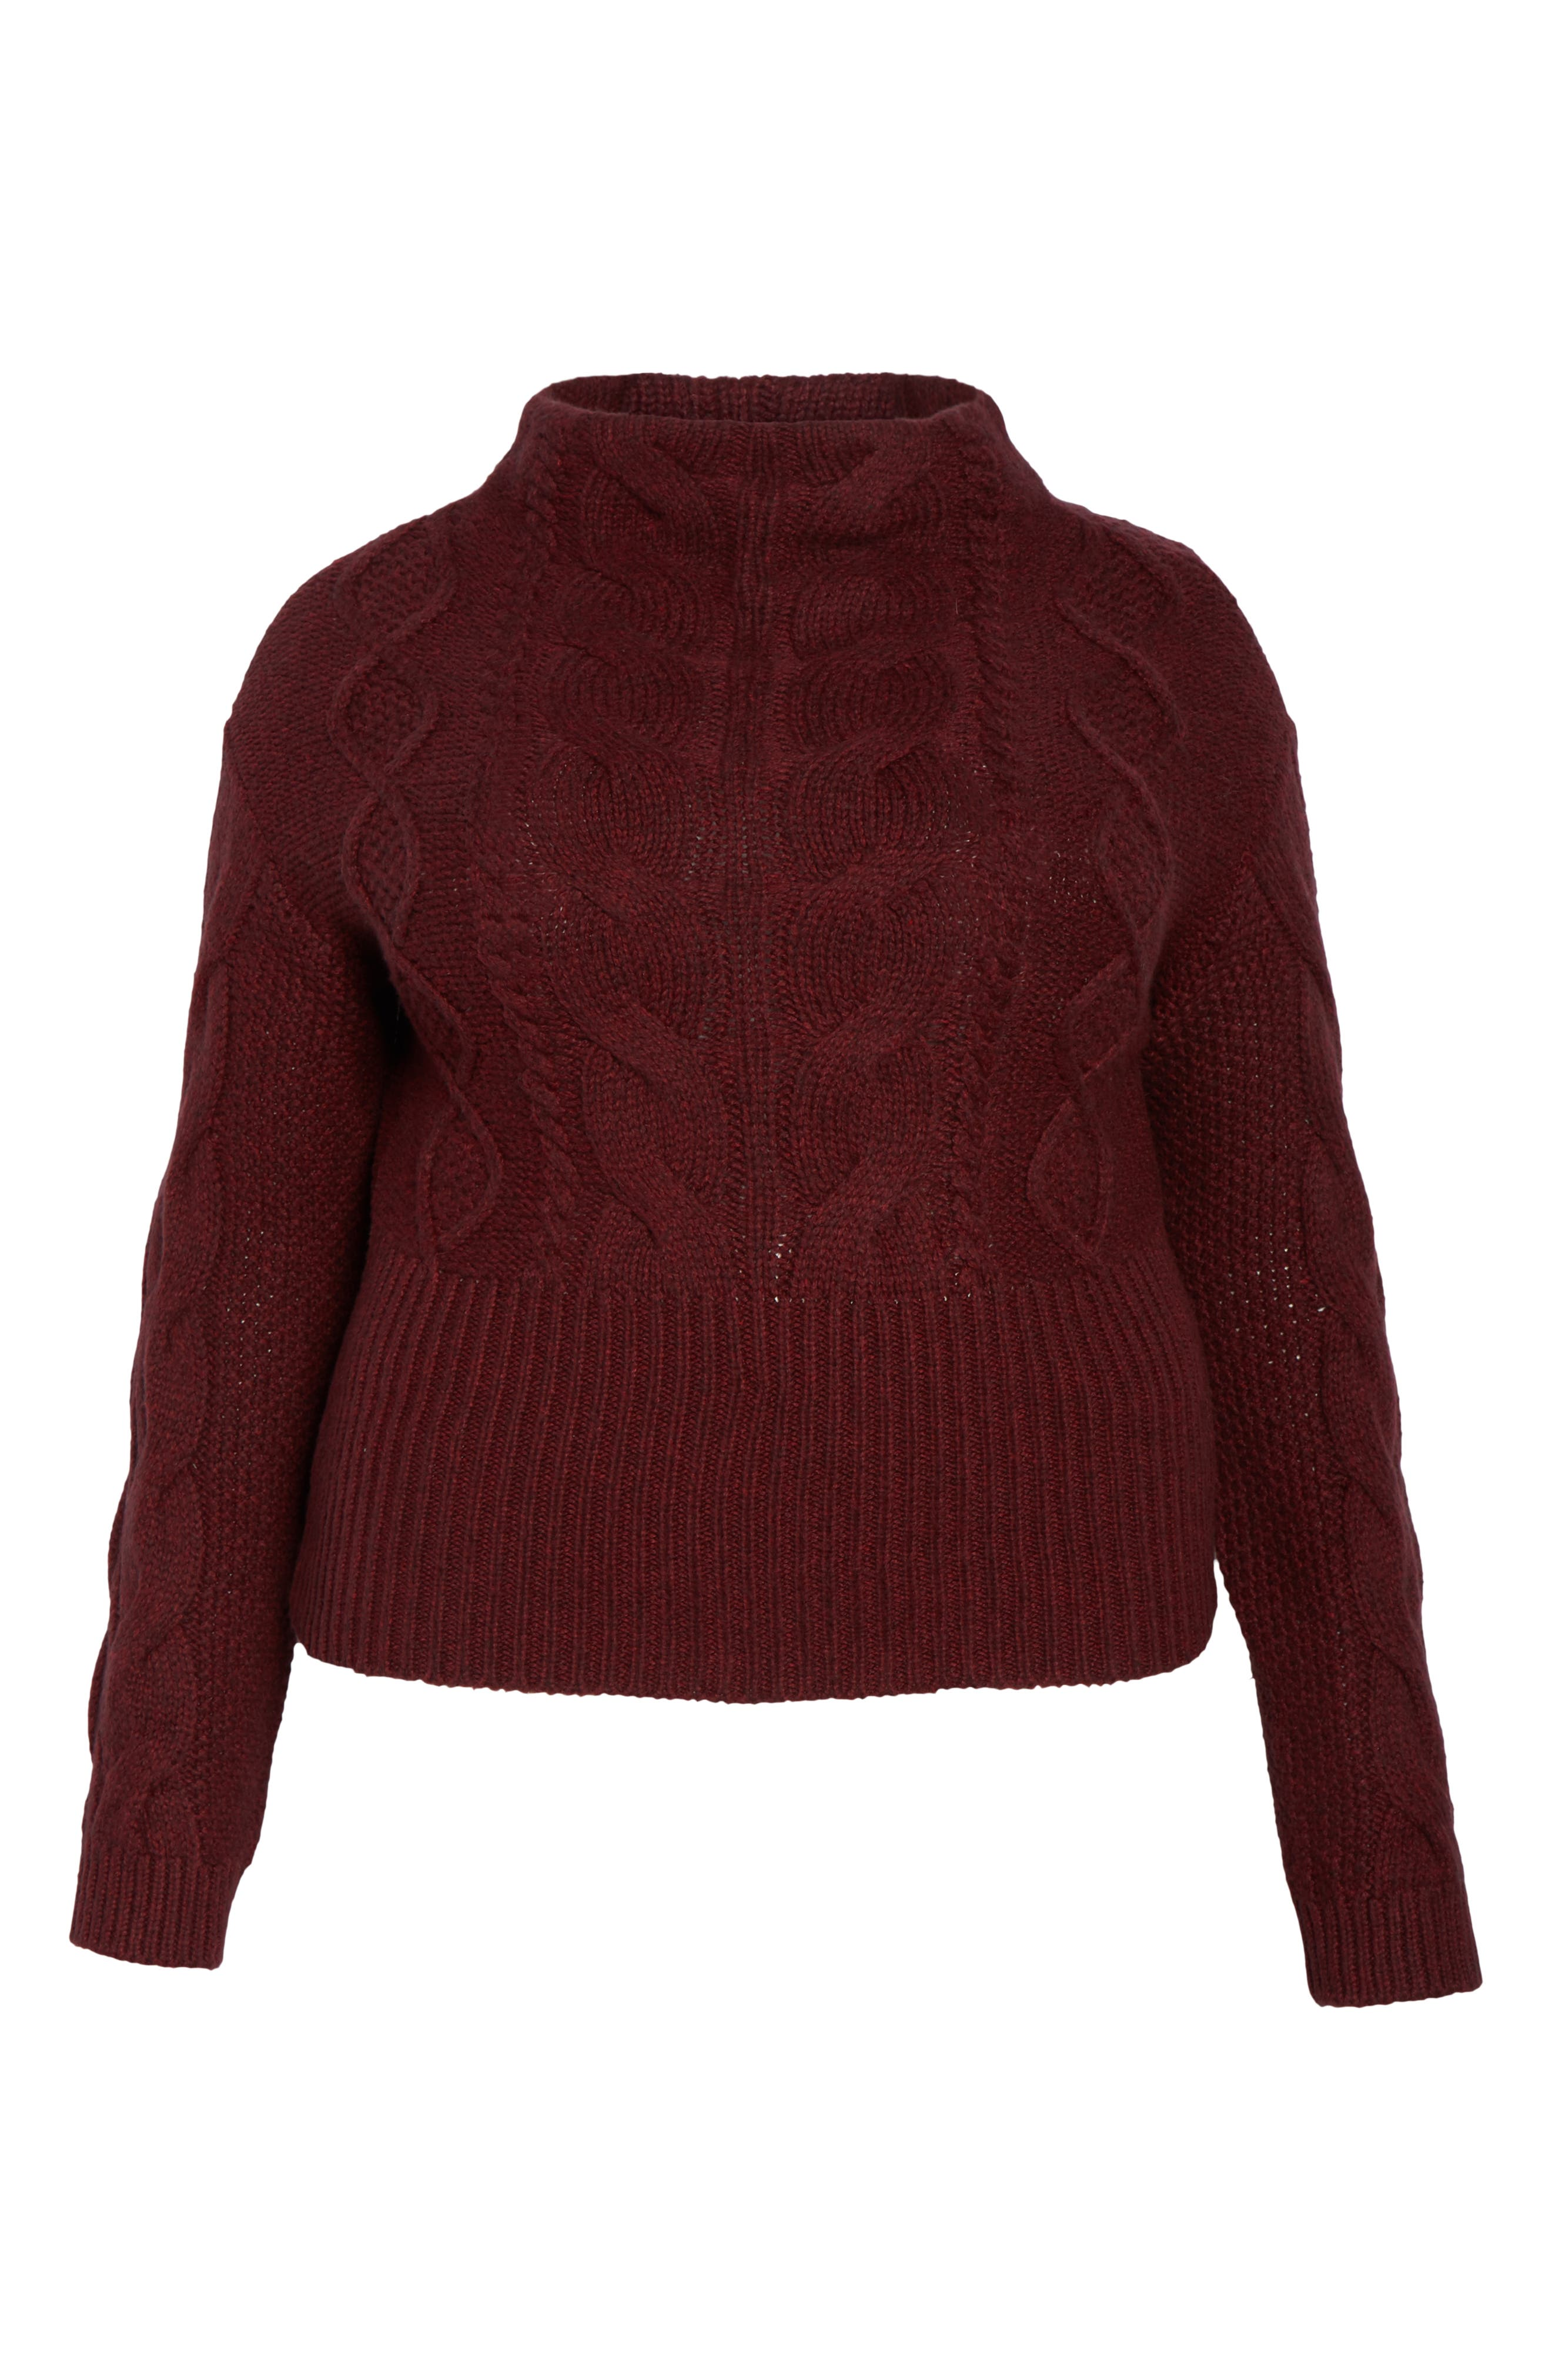 Cotton Blend Cable Knit Sweater,                             Alternate thumbnail 8, color,                             MANOR RED